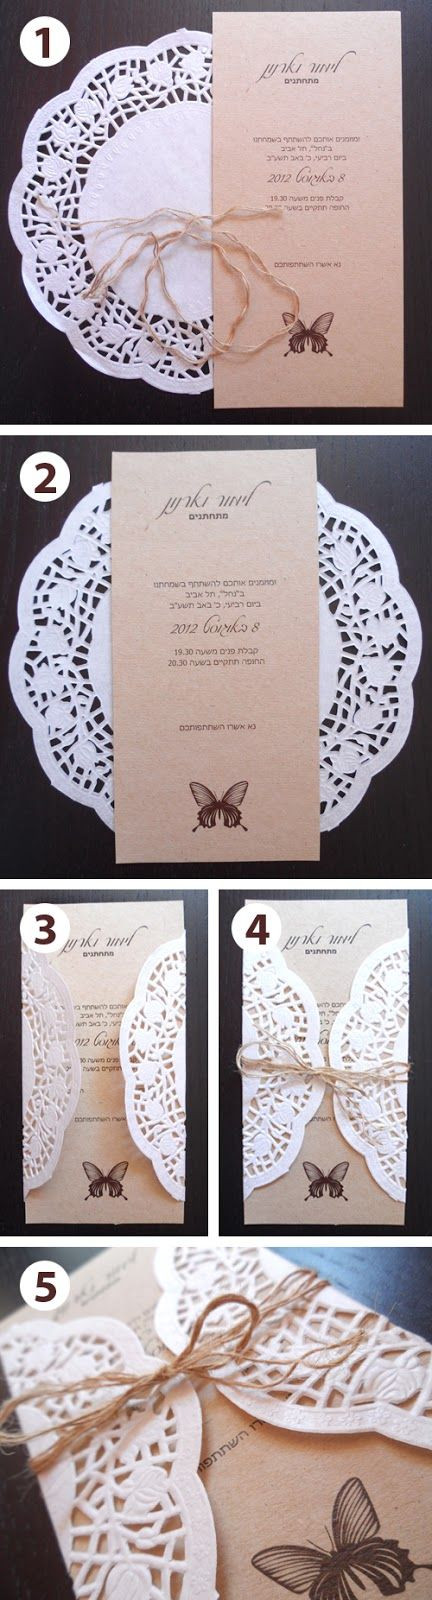 "Wedding Program 2 packs 8.5x11"" tan cardstock HobbyLobby. 8 packs 8"" doilies HobbyLobby. Twine (I have)"